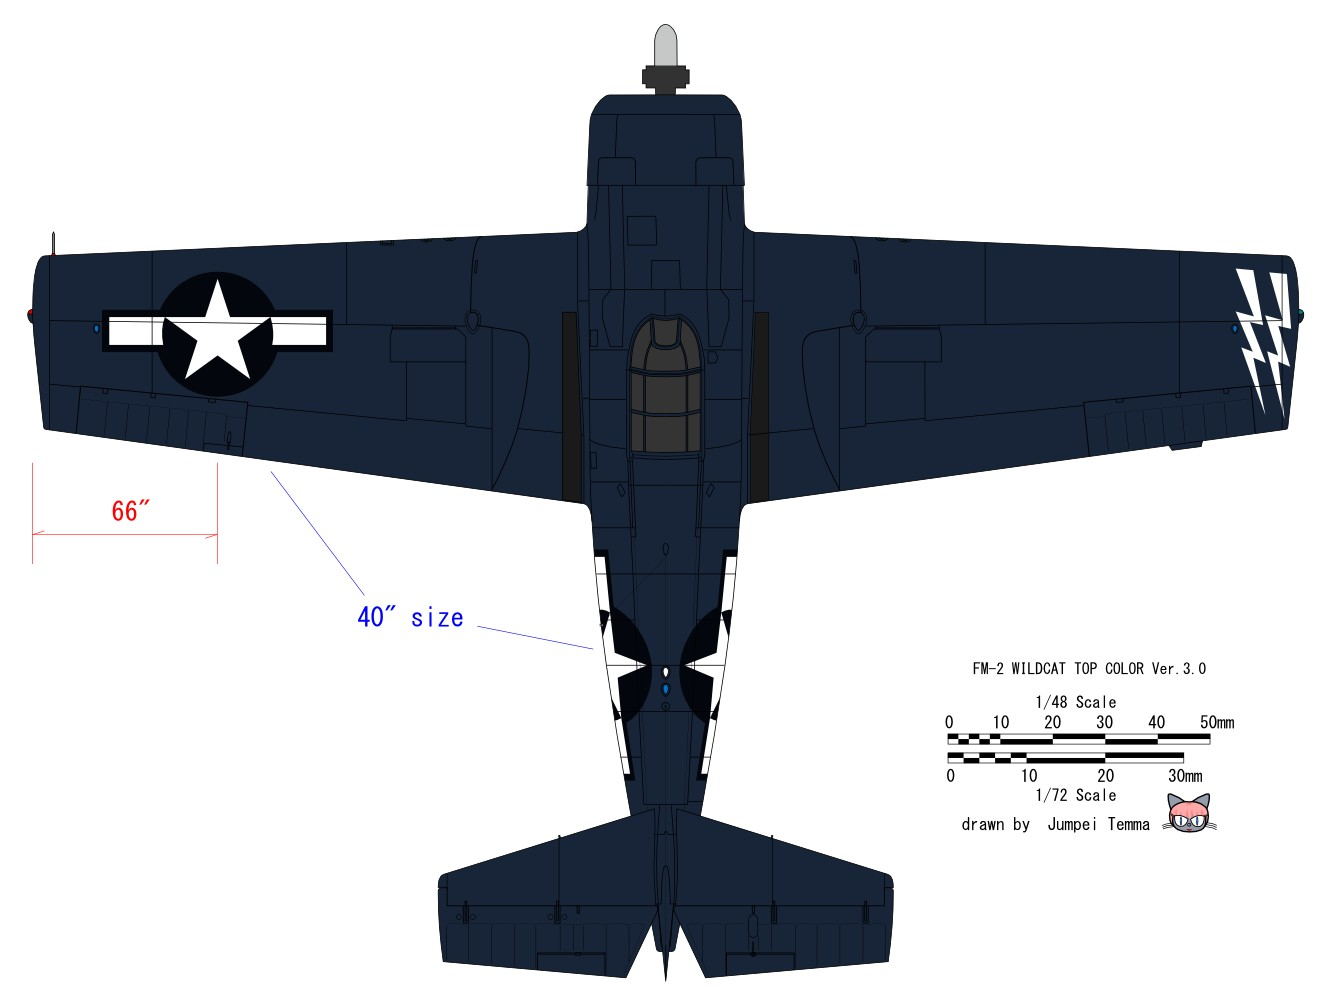 Aircraft scale drawing of a Ford FM 2 Wildcat Top Section Color View 1.48 Scale drawn by J Temma 0A